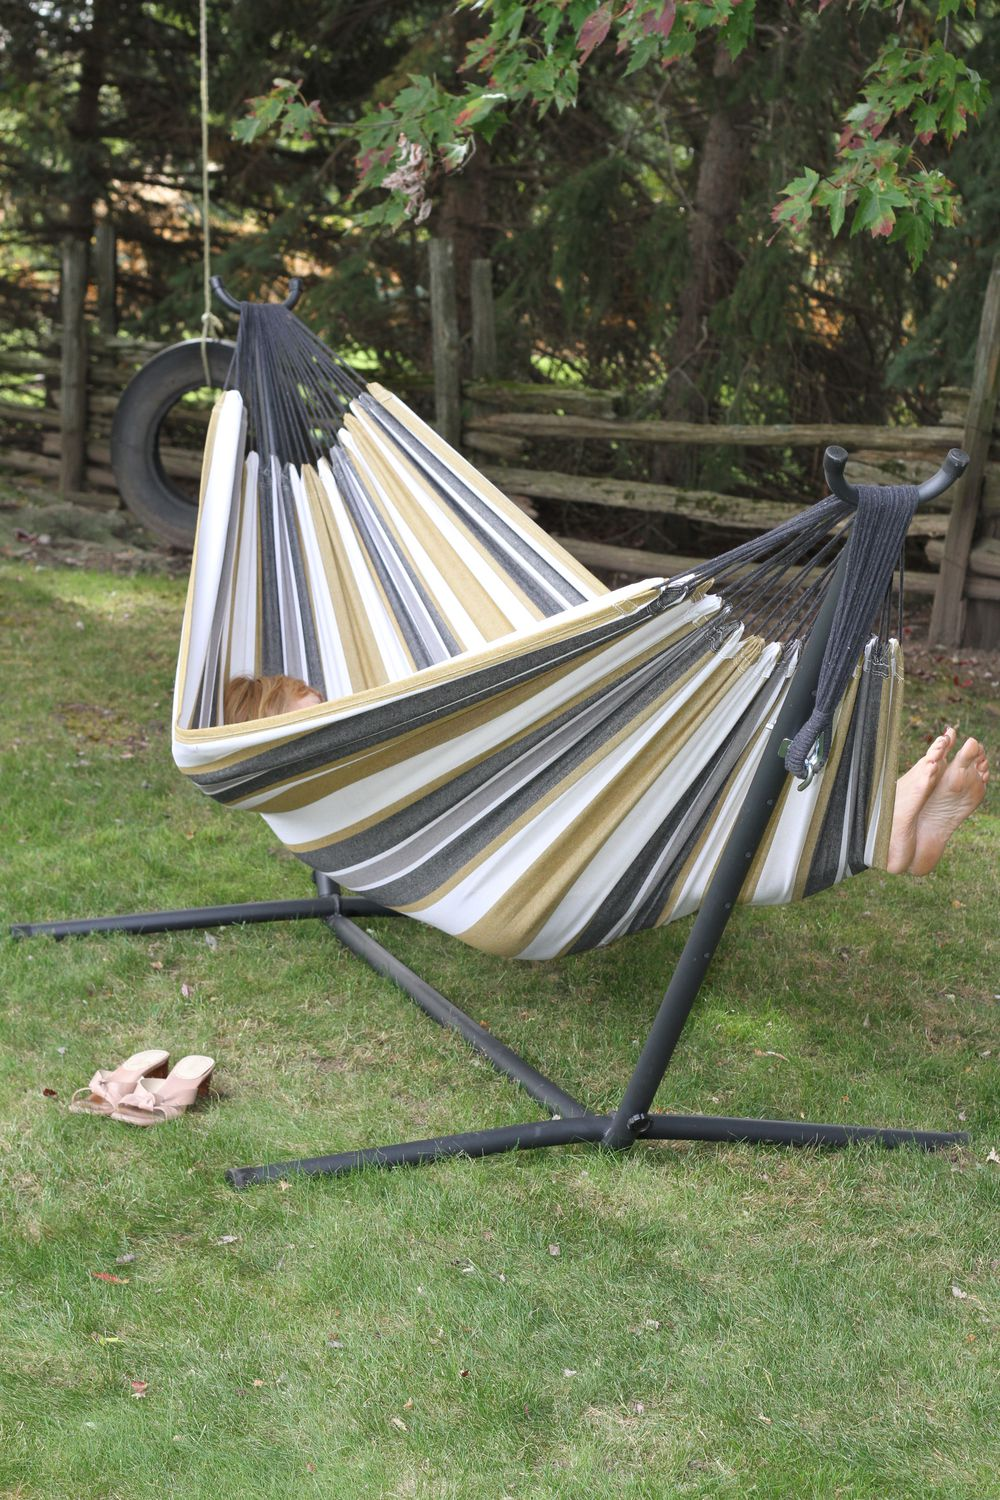 xl rica of costa buy chair online hammock x att photo